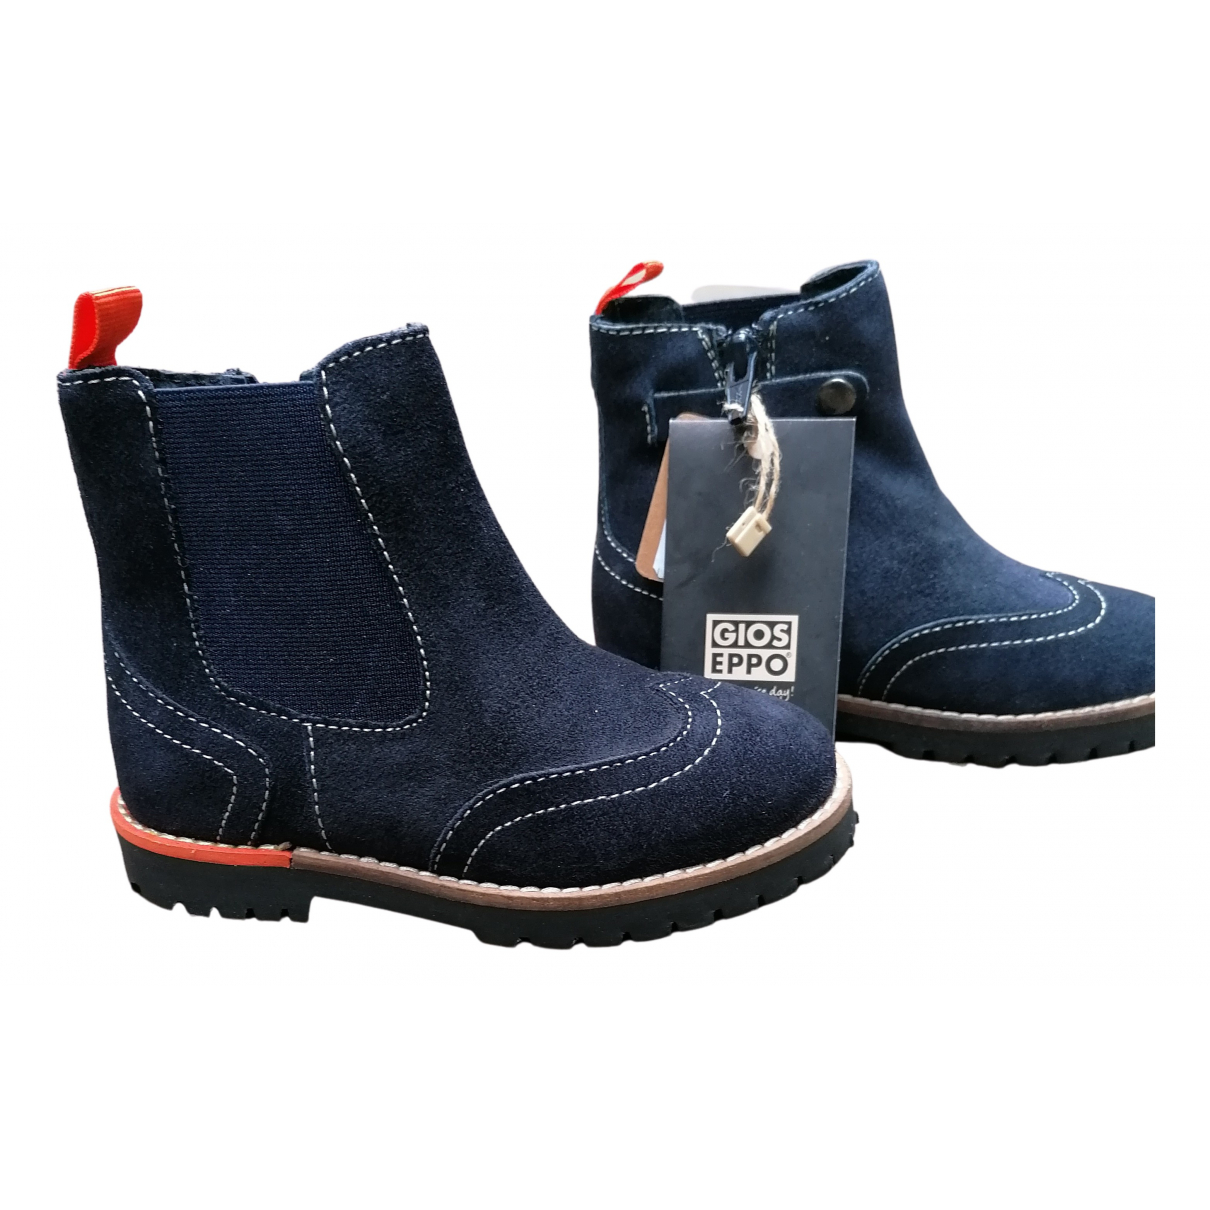 Gioseppo N Navy Suede Boots for Kids 26 FR